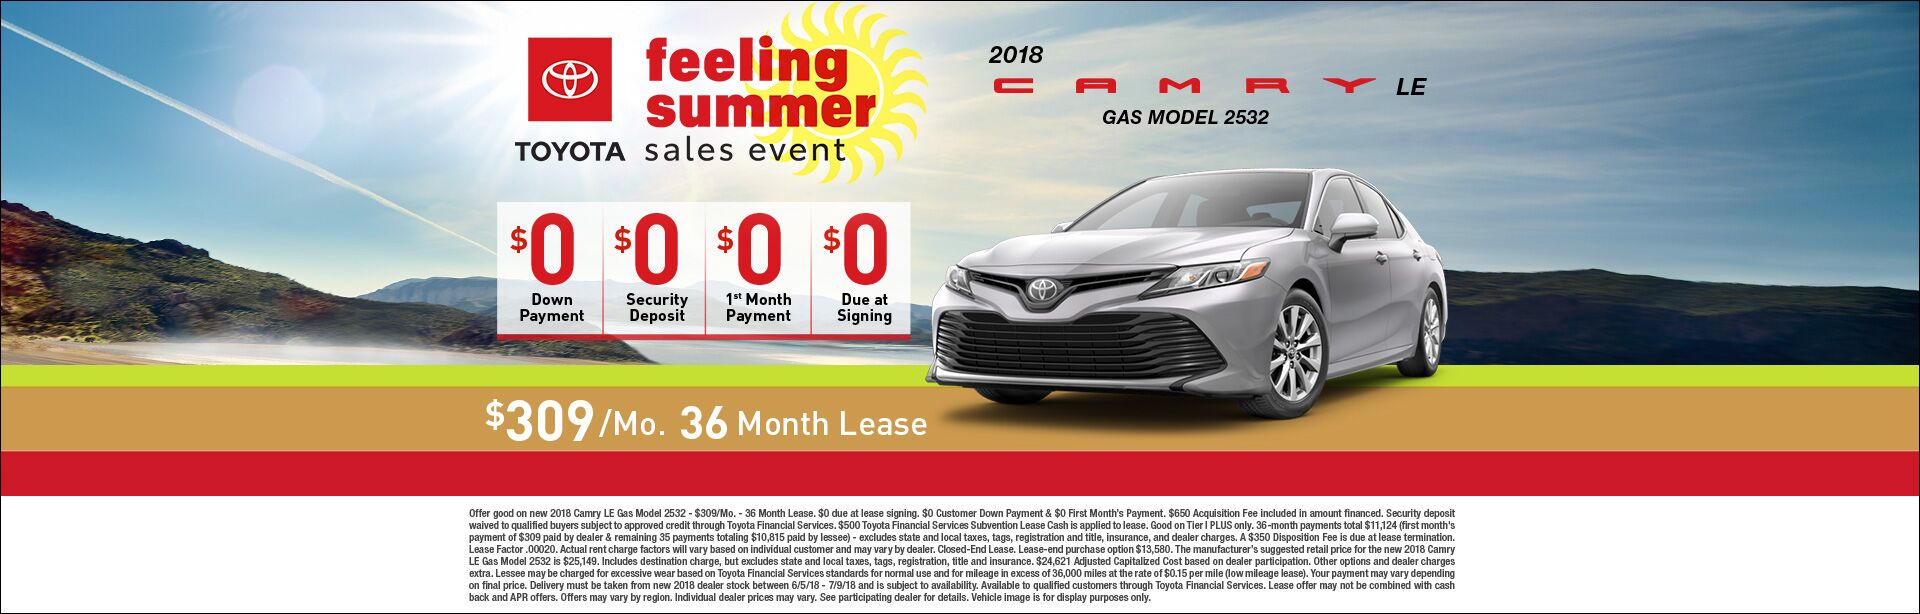 Feeling Summer Camry Lease